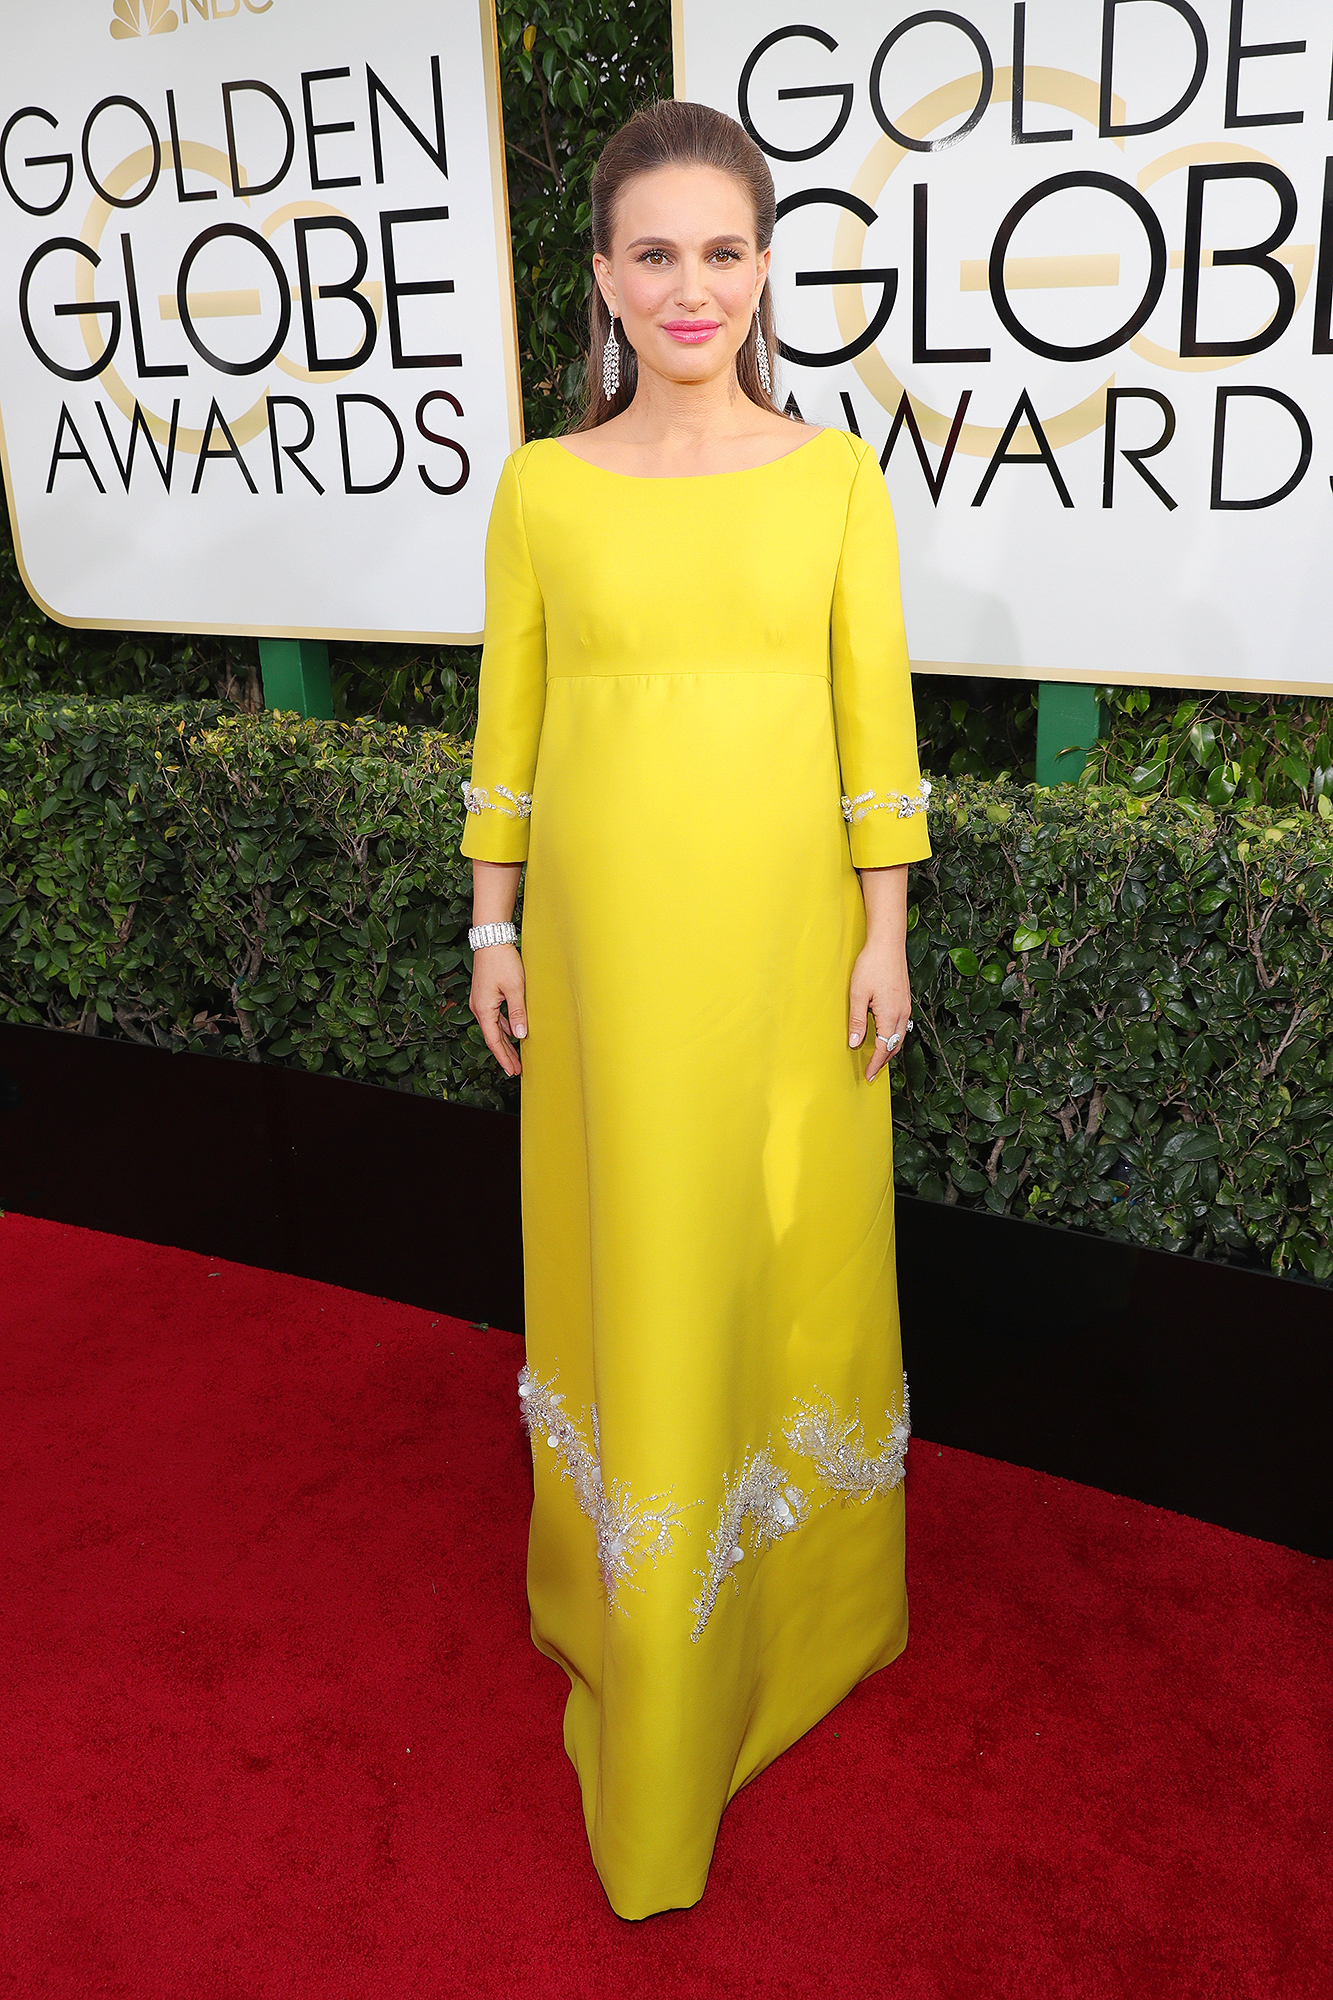 51c4c119d1e3 Natalie Portman arrives at the 74th Annual Golden Globe Awards held at the  Beverly Hilton on Jan. 8